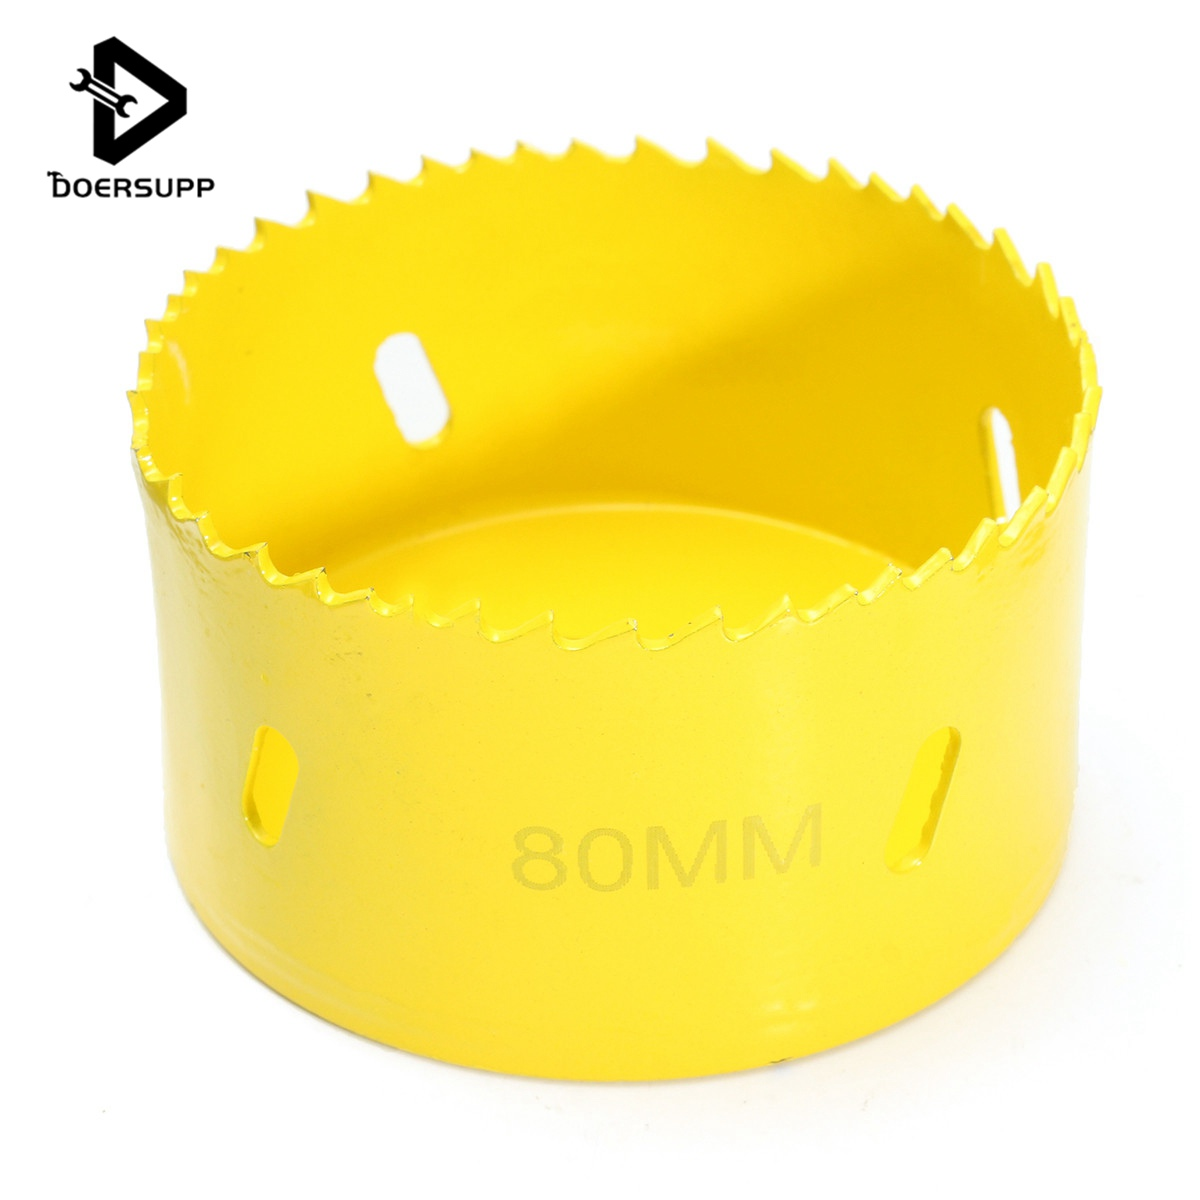 Doersupp M42 Metal Hole Saw Holesaw Cutter Arbor Pilot Drill Bit Wood Plastic 80mm Hand Power Tool Accessories new 50mm concrete cement wall hole saw set with drill bit 200mm rod wrench for power tool